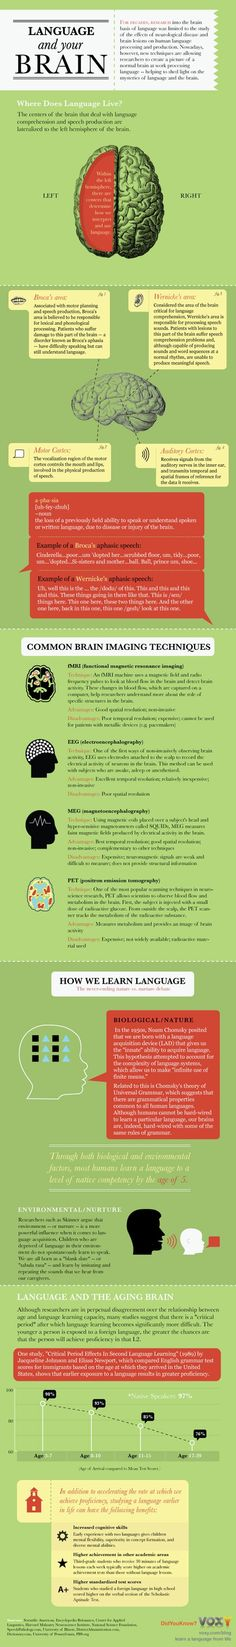 Richard Yates I have a brain injury mines Anoxic brain injury ;Infographic: Language and Your Brain - explains aphasia that can occur from a stroke or other brain injury Speech Pathology, Speech Language Pathology, Speech And Language, Speech Therapy, Learning Tips, Mobile Learning, Aphasia, Dyslexia, Second Language